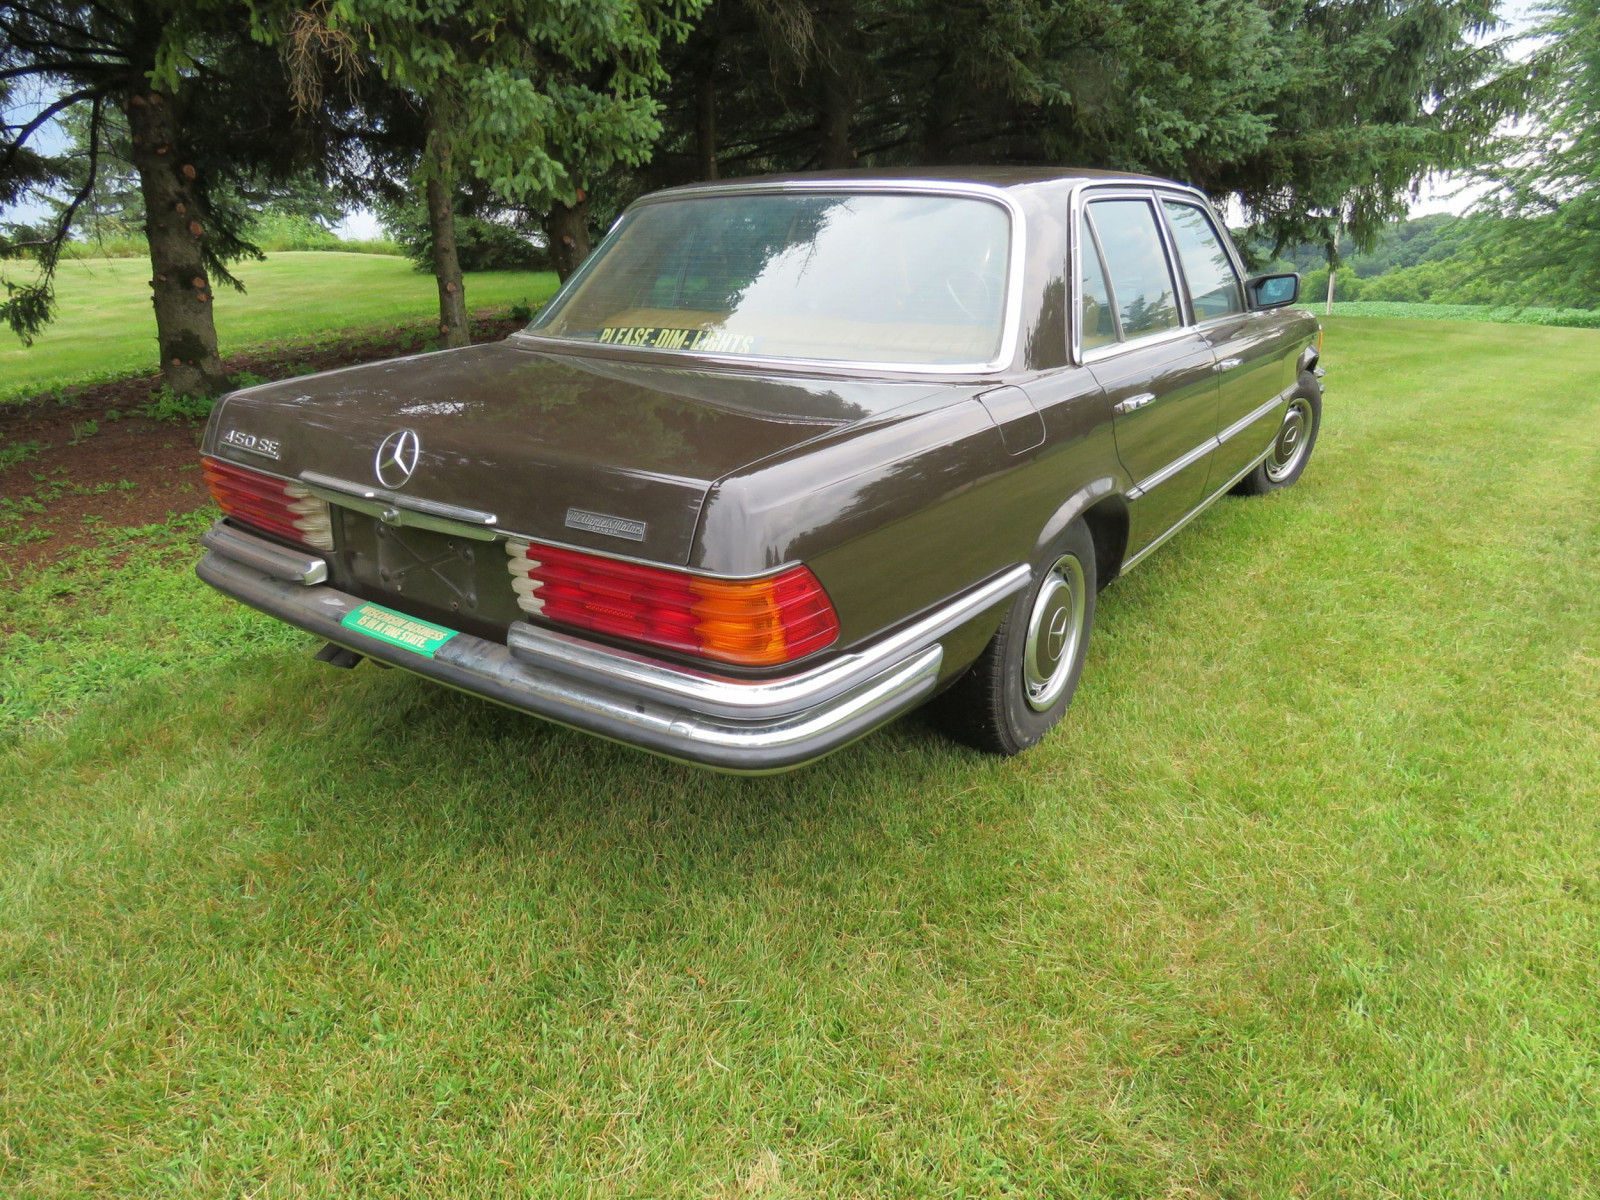 1973 Mercedes 450 SE 4dr Sedan - Image 6